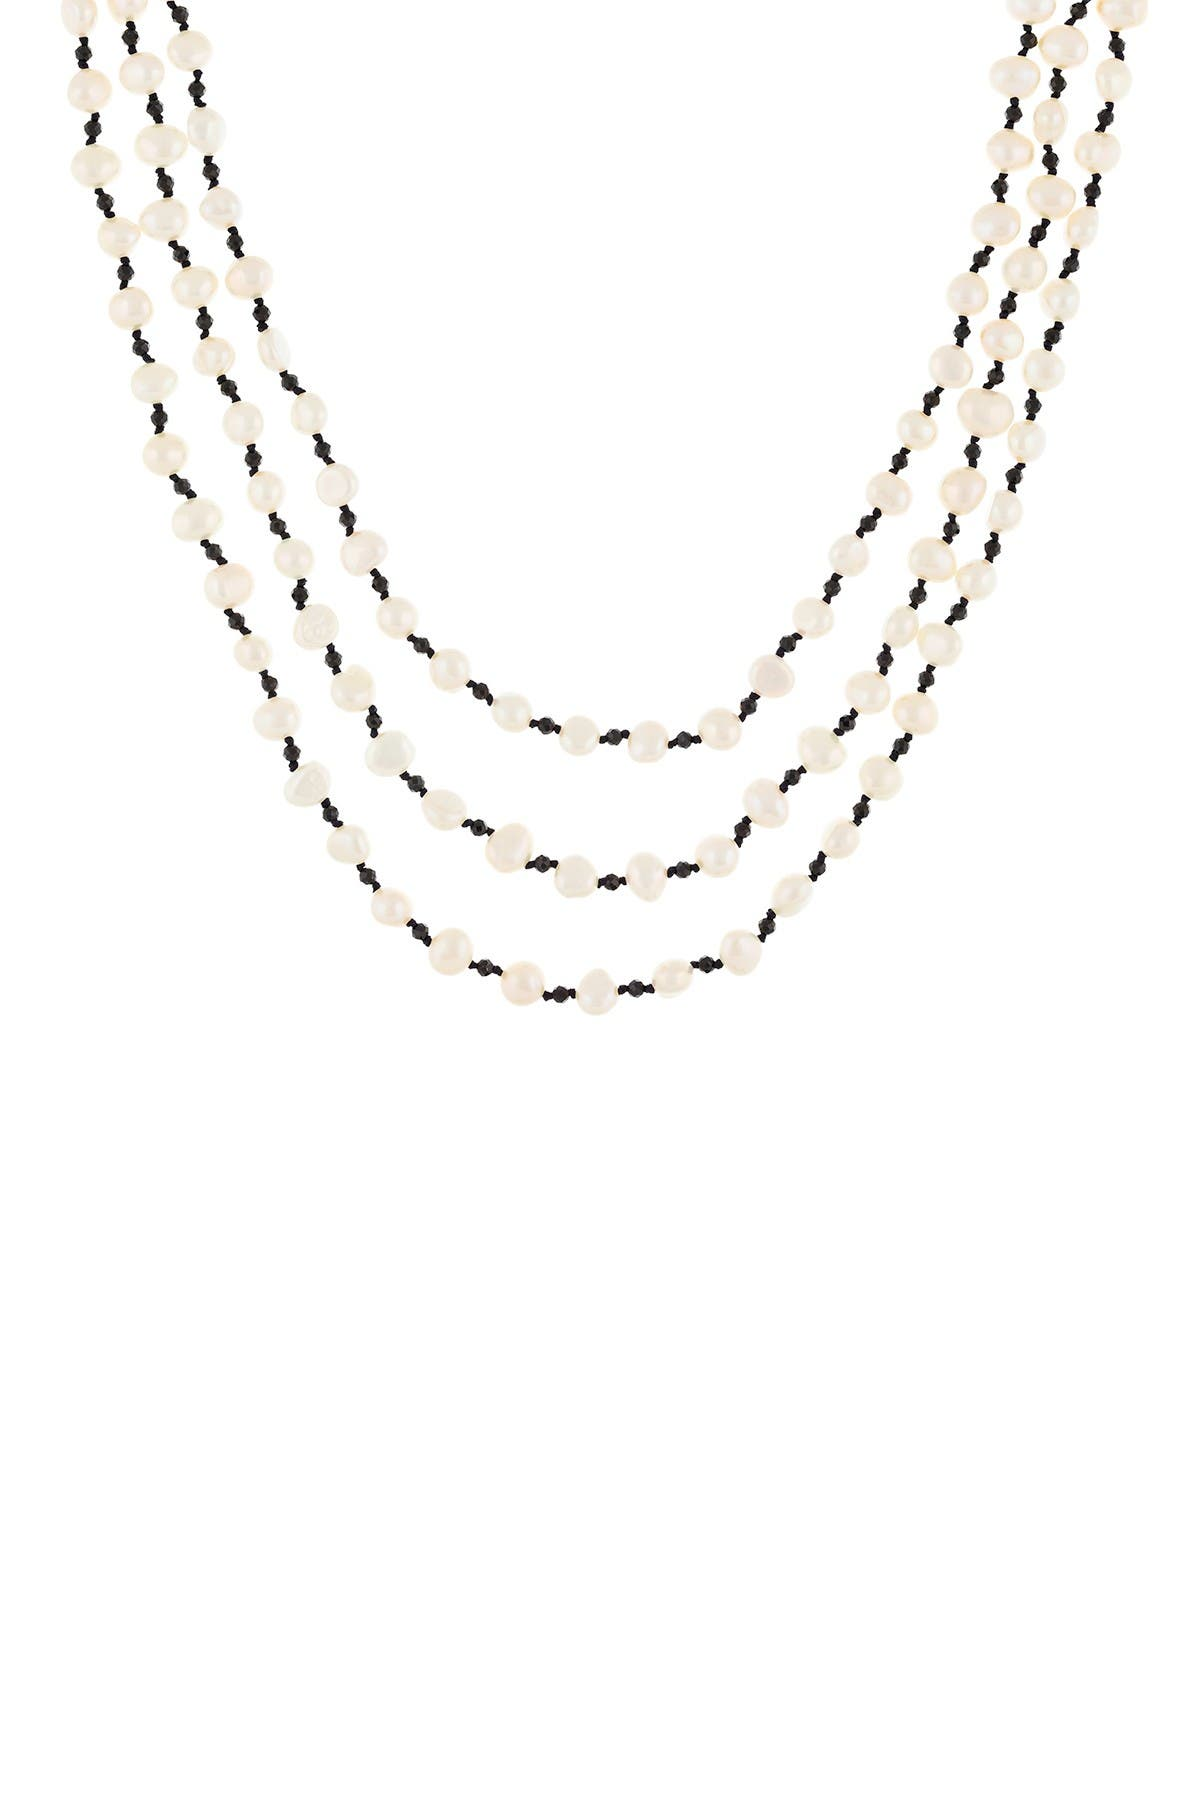 Image of Splendid Pearls 5-6mm White Freshwater Pearl Triple Strand Necklace